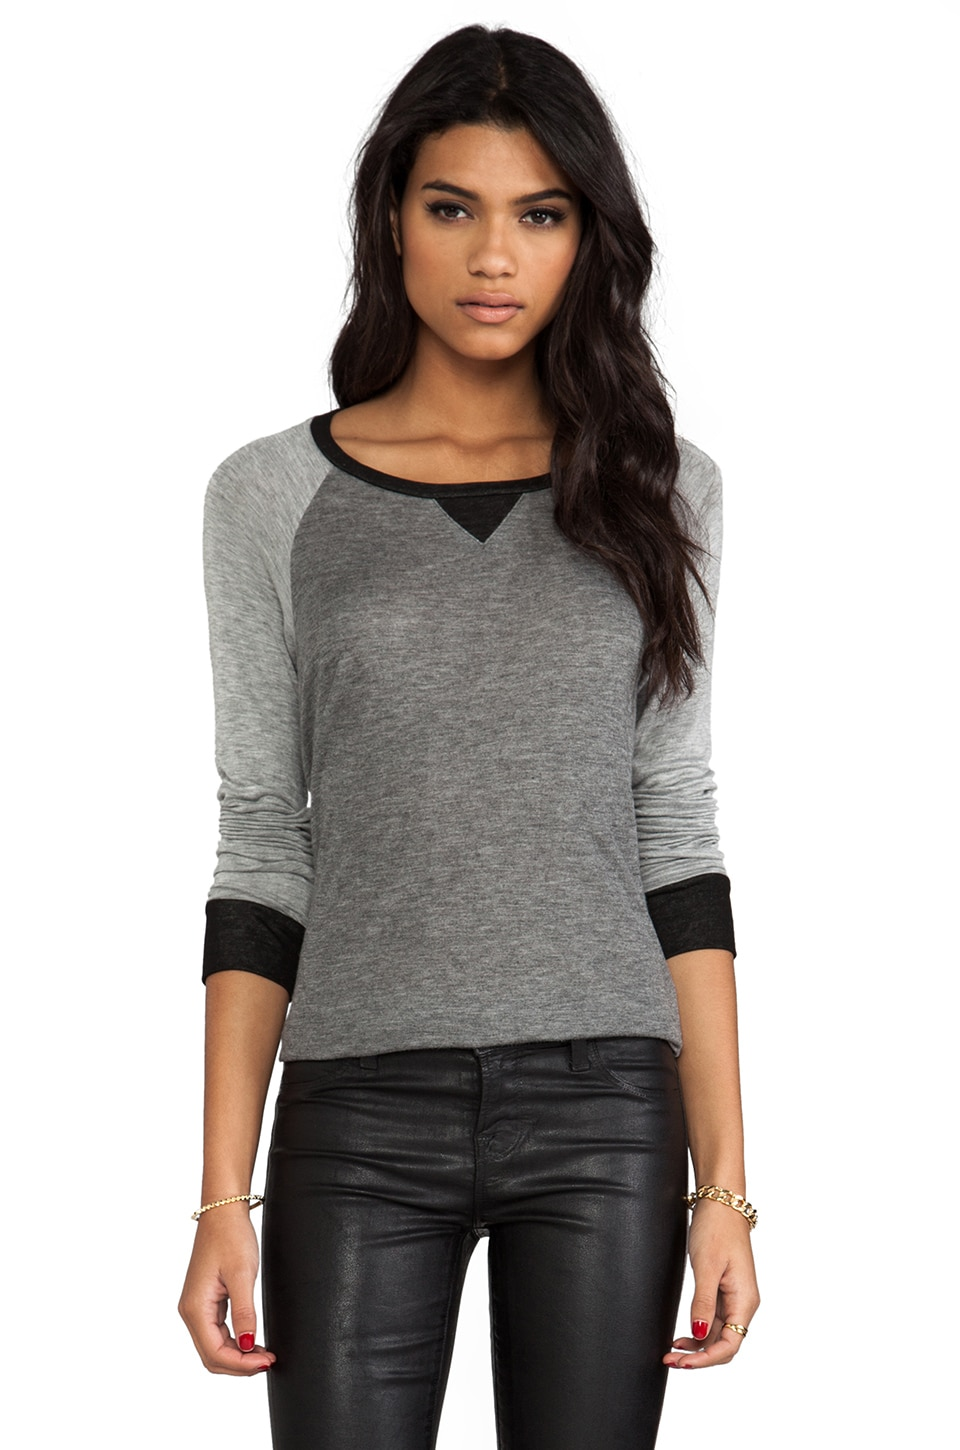 Whetherly Jaden in Charcoal & Heather & Black